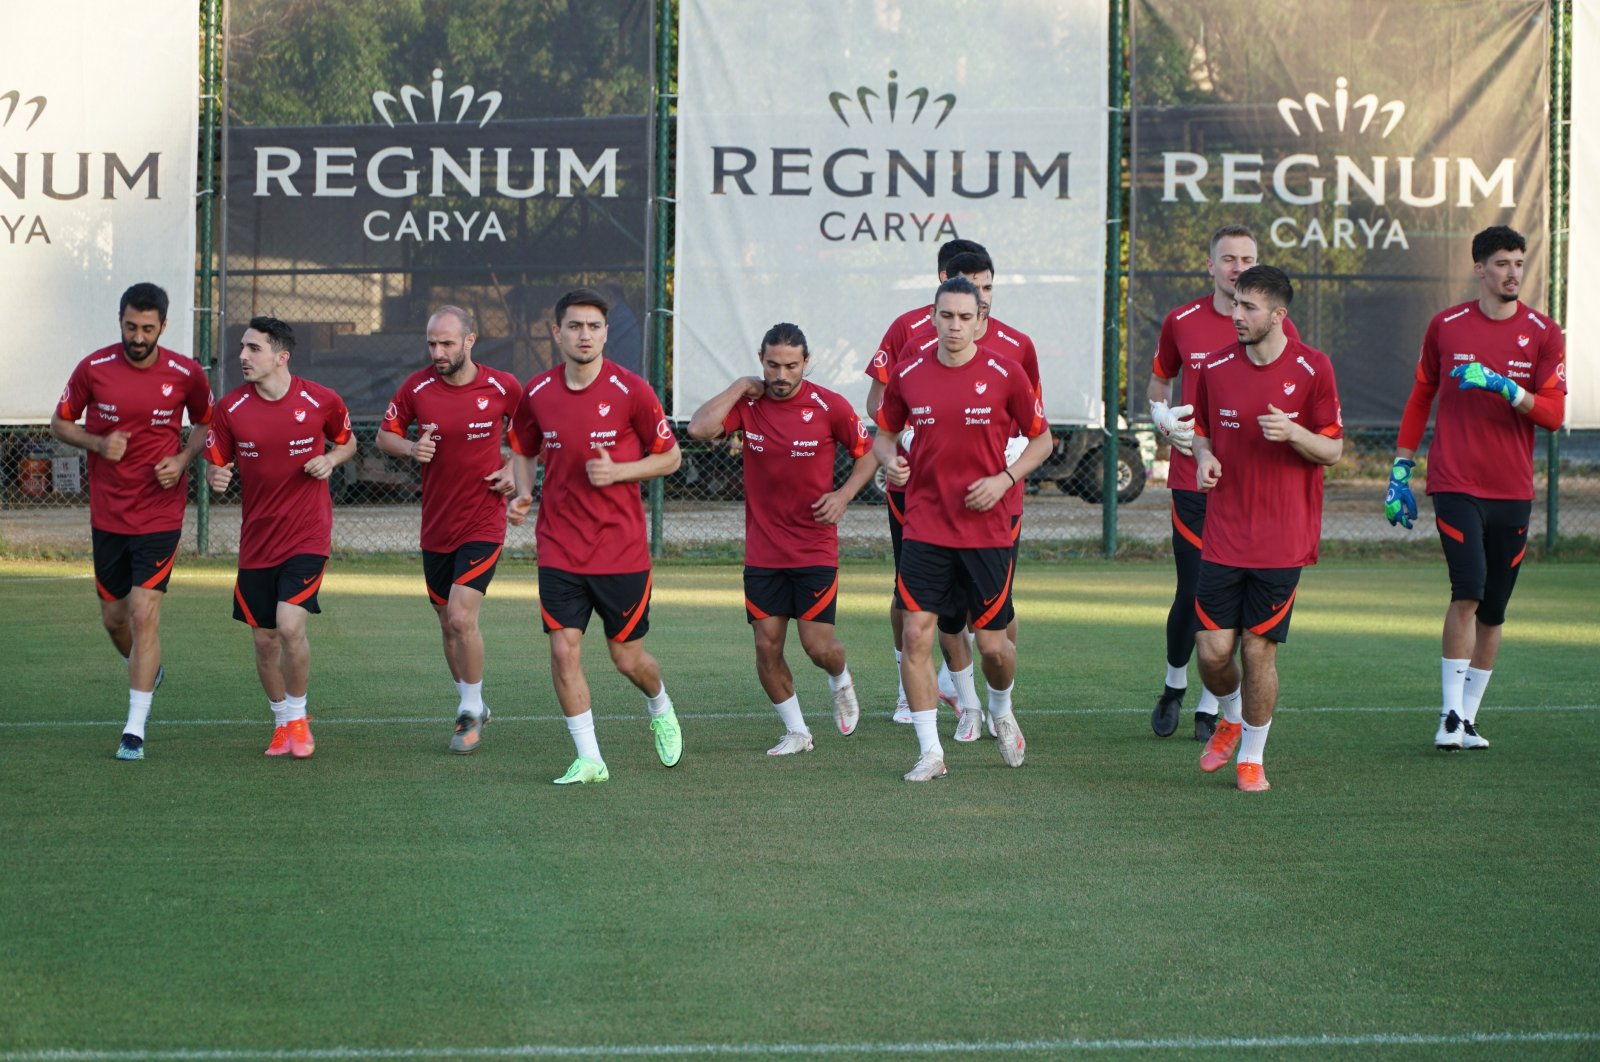 Turkish national football team players practice during a training session in Antalya, Turkey, May 19, 2021. (IHA Photo)